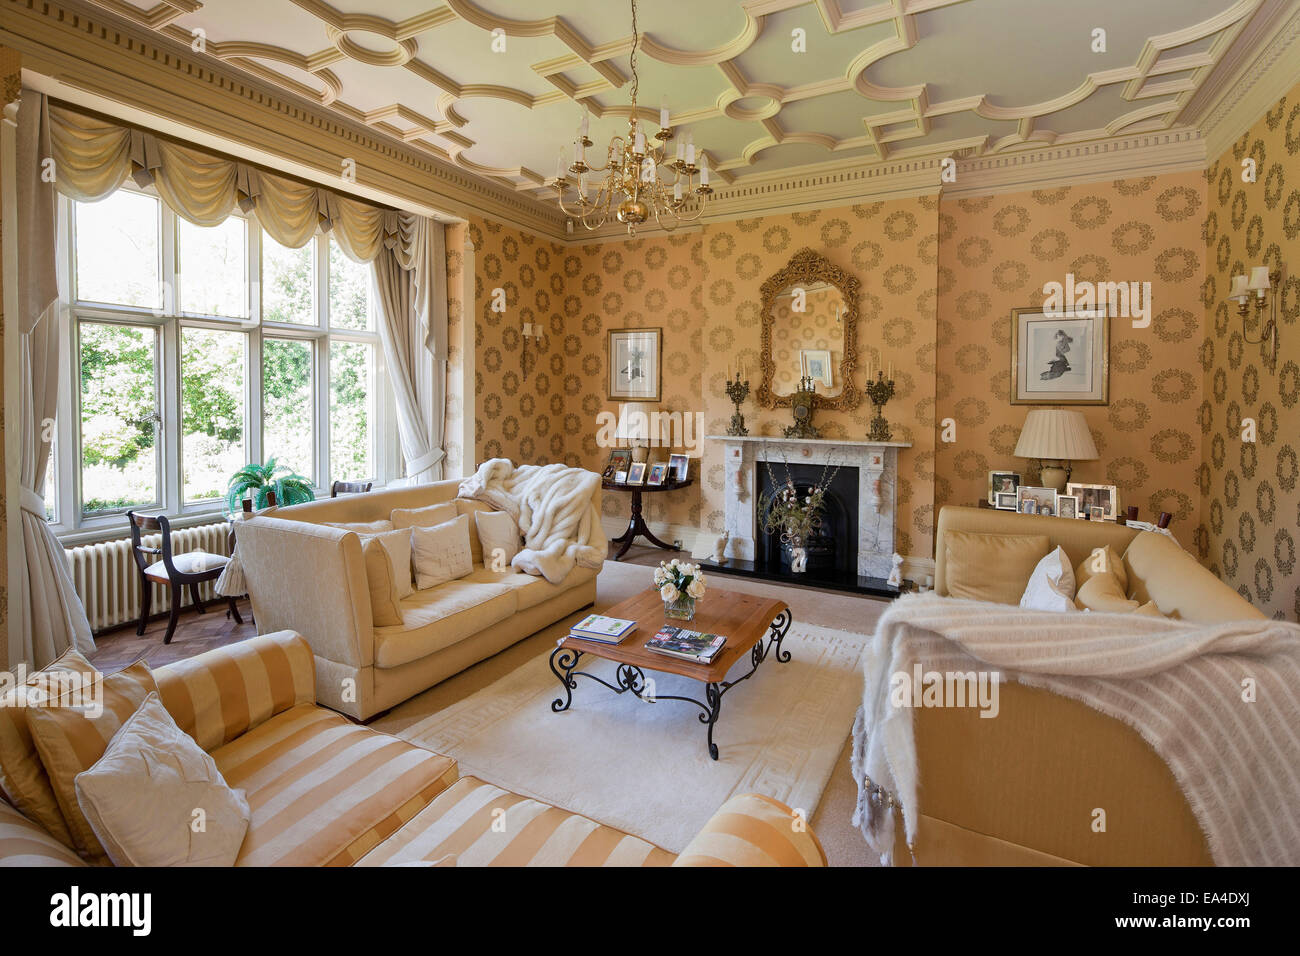 interiors traditional living rooms cream stock photos & interiors